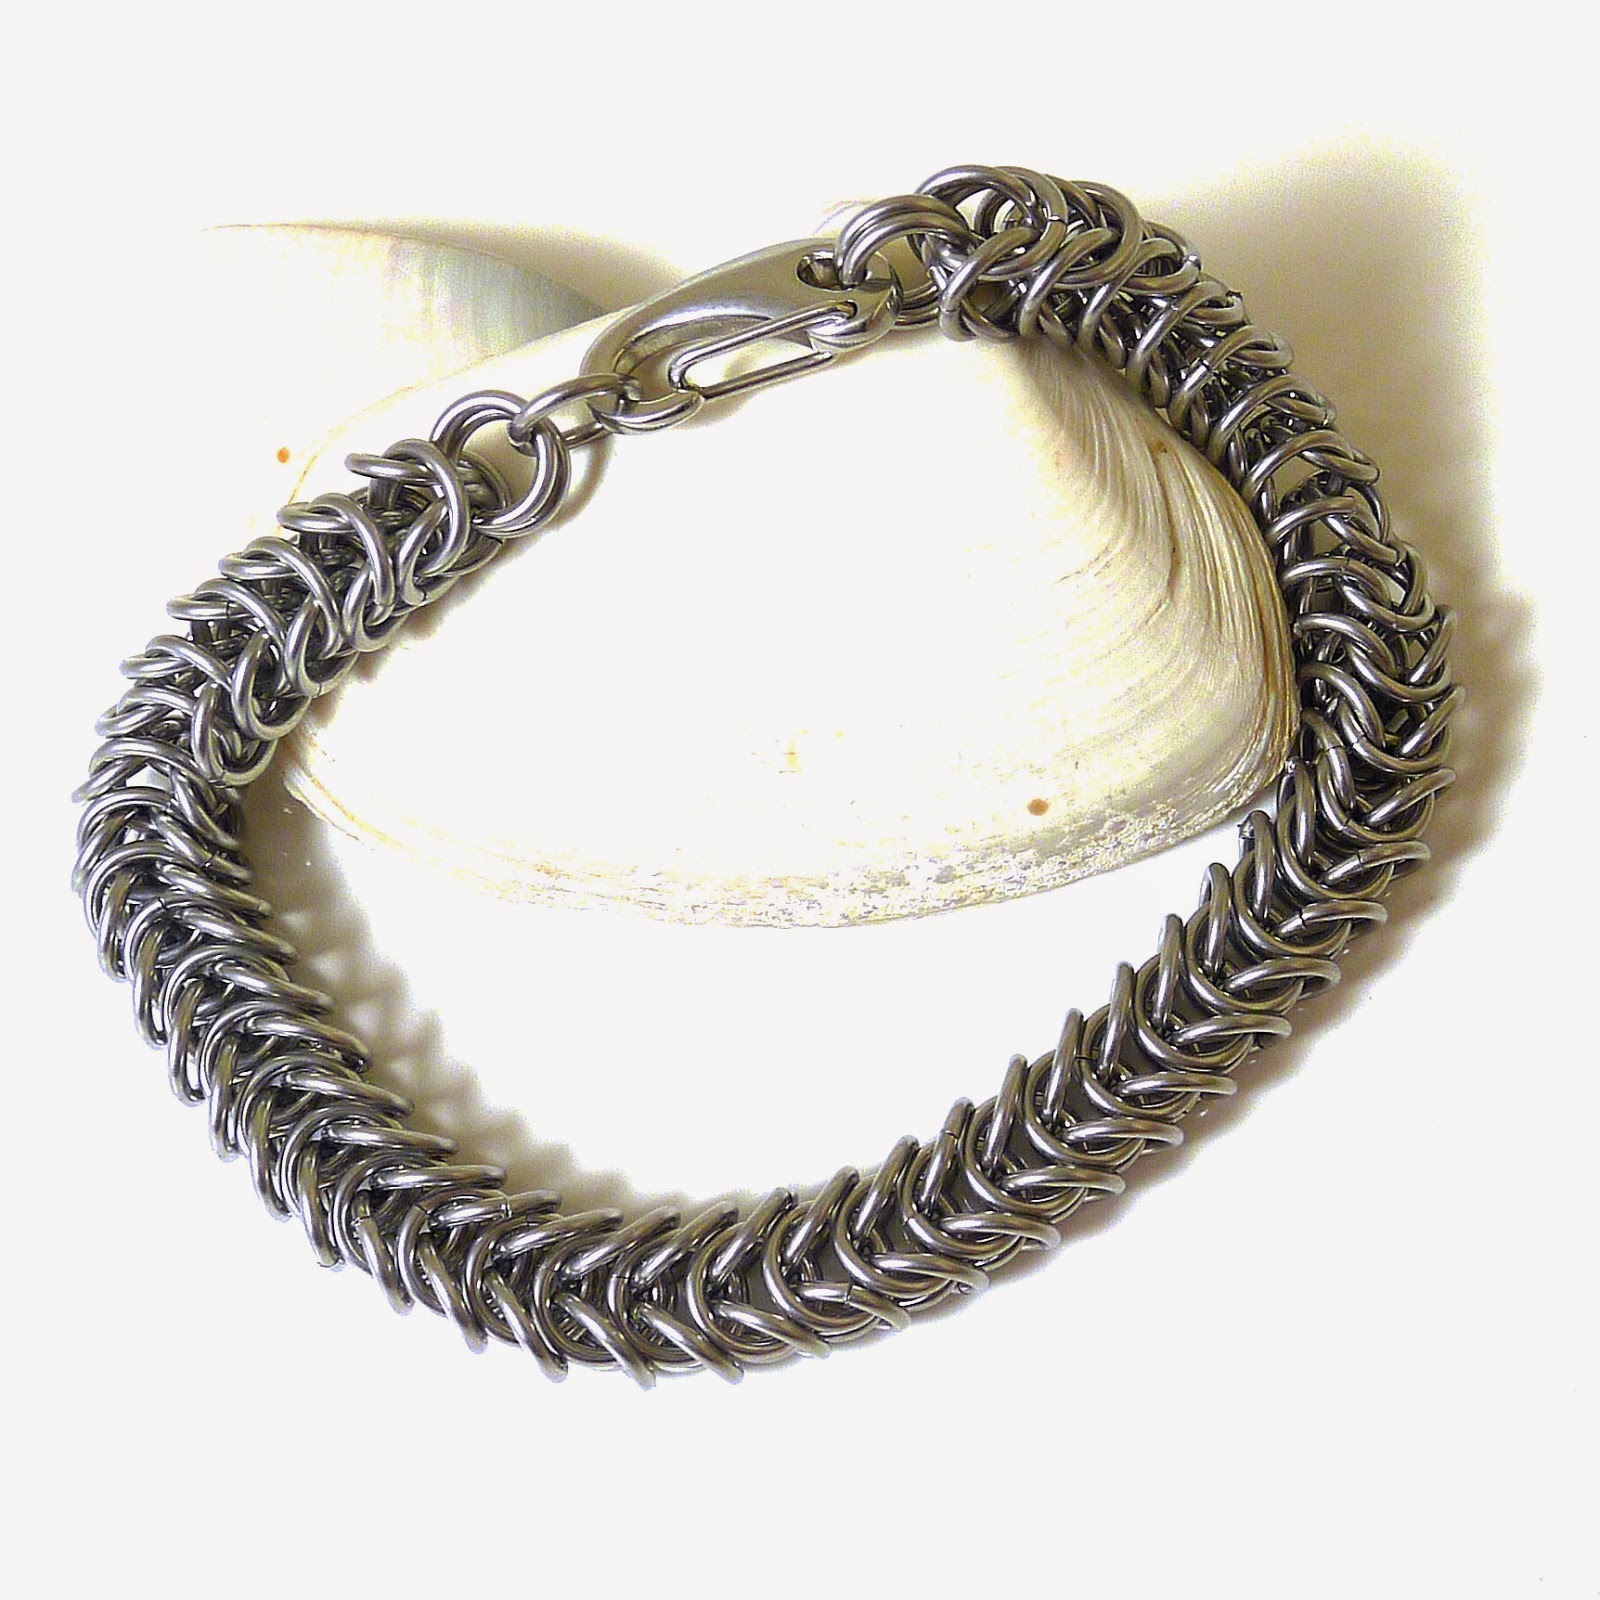 http://www.shazzabethcreations.co.nz/#!product/prd1/2560146991/men%27s-stainless-steel-box-chainmaille-bracelet